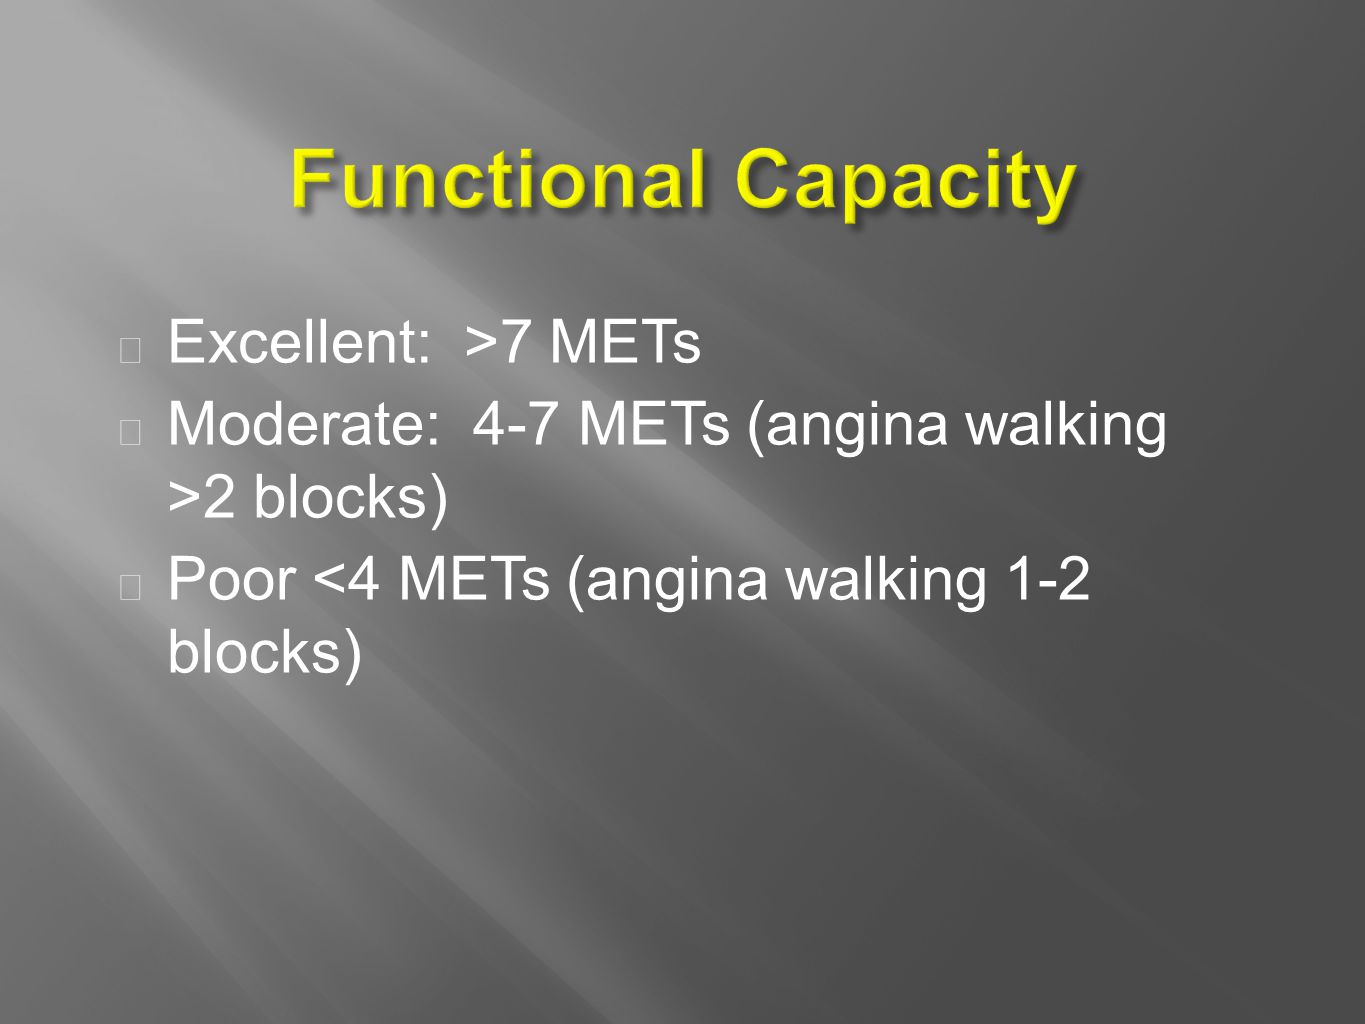  Excellent: >7 METs  Moderate: 4-7 METs (angina walking >2 blocks)  Poor <4 METs (angina walking 1-2 blocks)